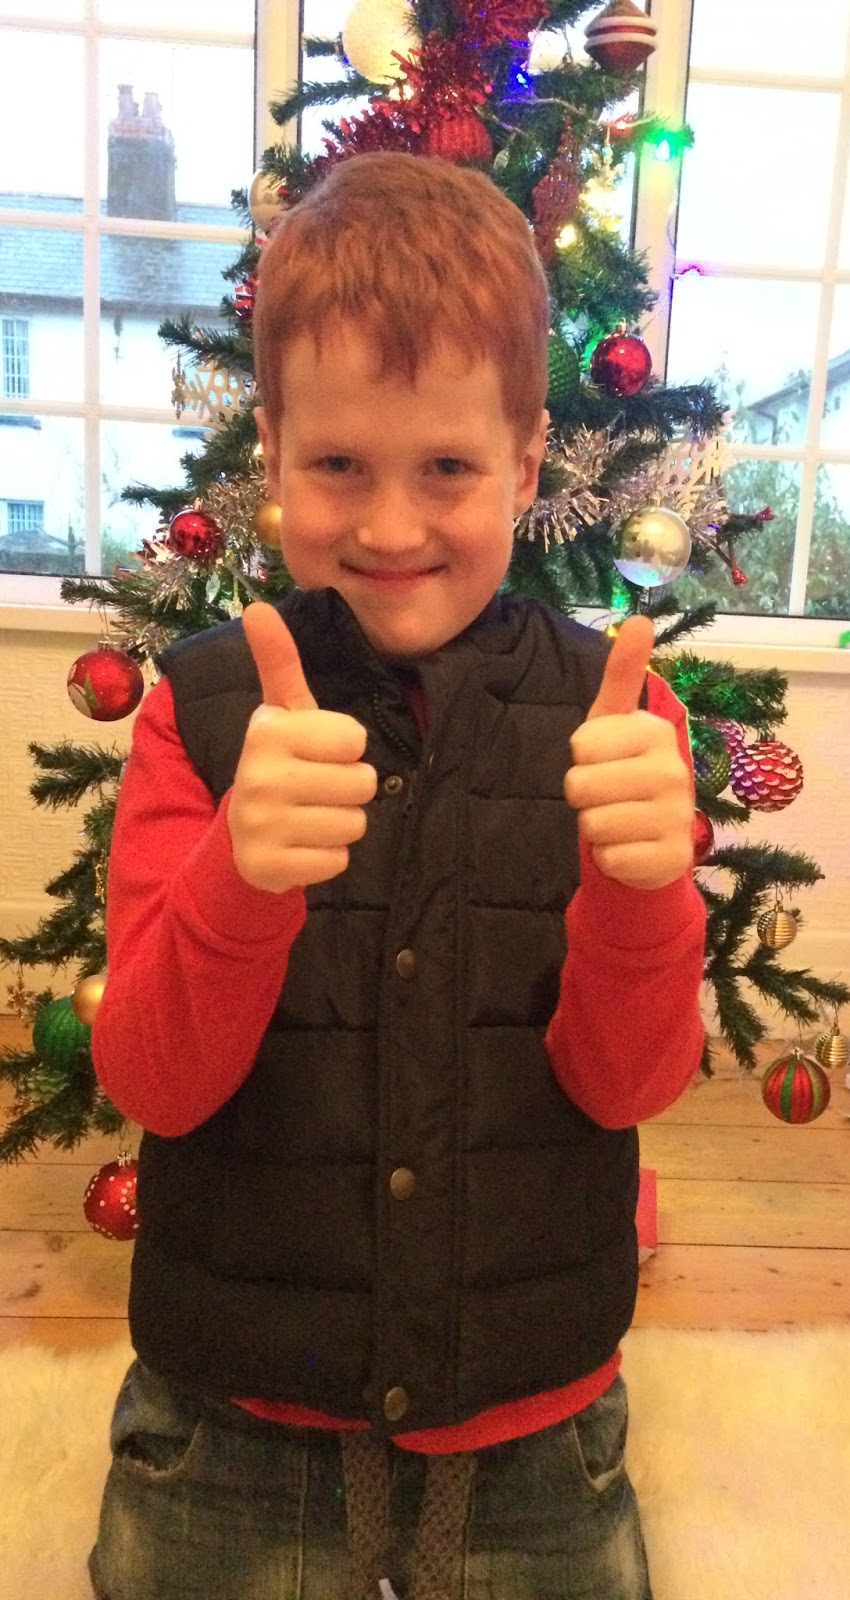 Ieuan giving the thumbs up by the Christmas tree